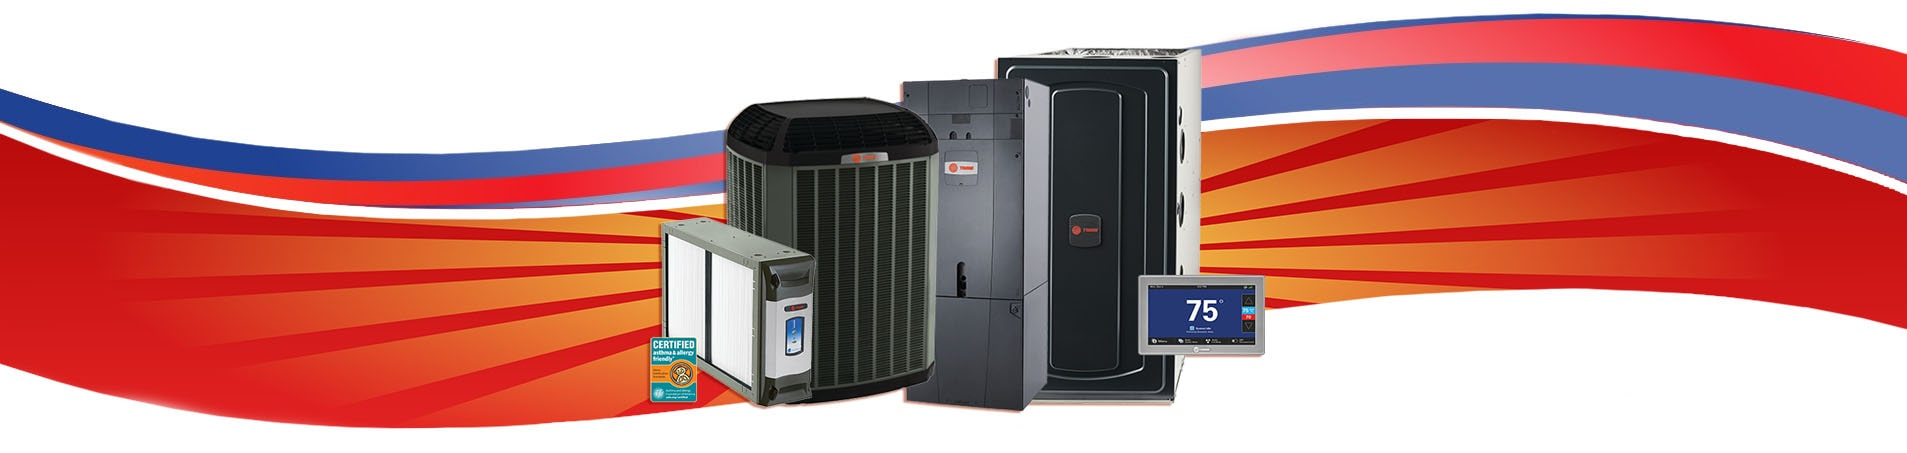 Trane Heating service in Hoffman Estates IL is our speciality.